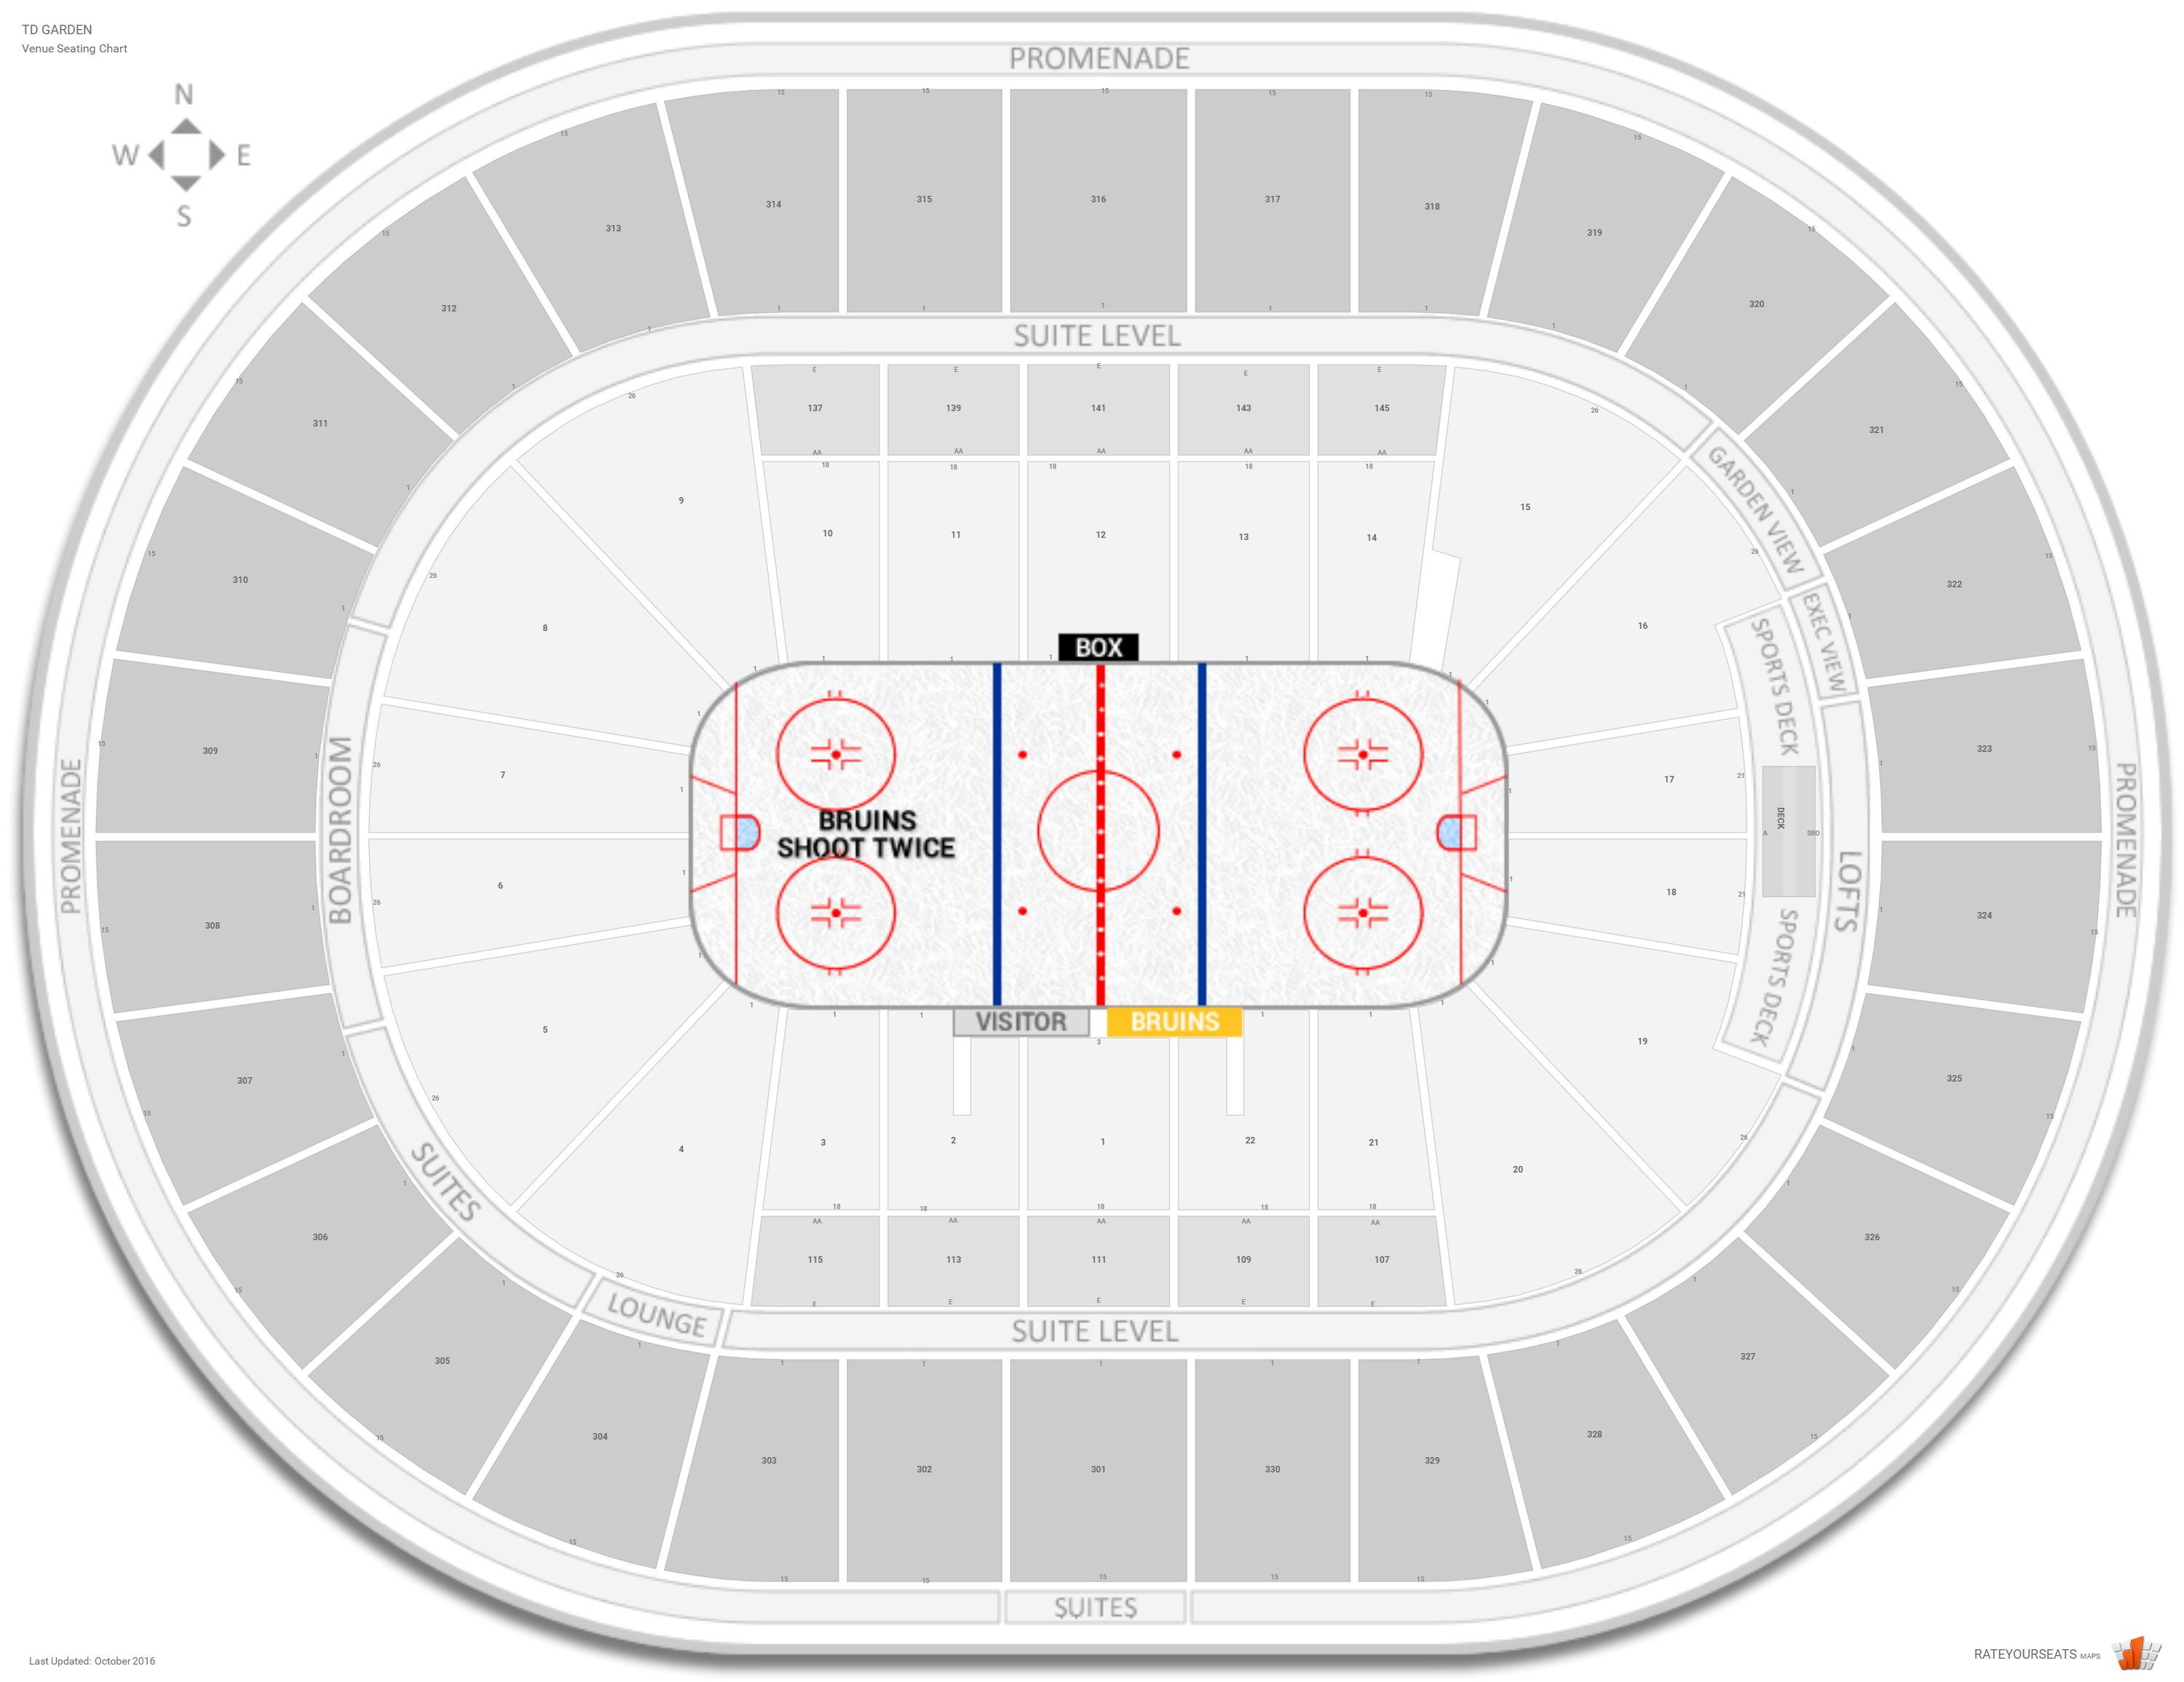 Boston bruins seating guide td garden rateyourseats com